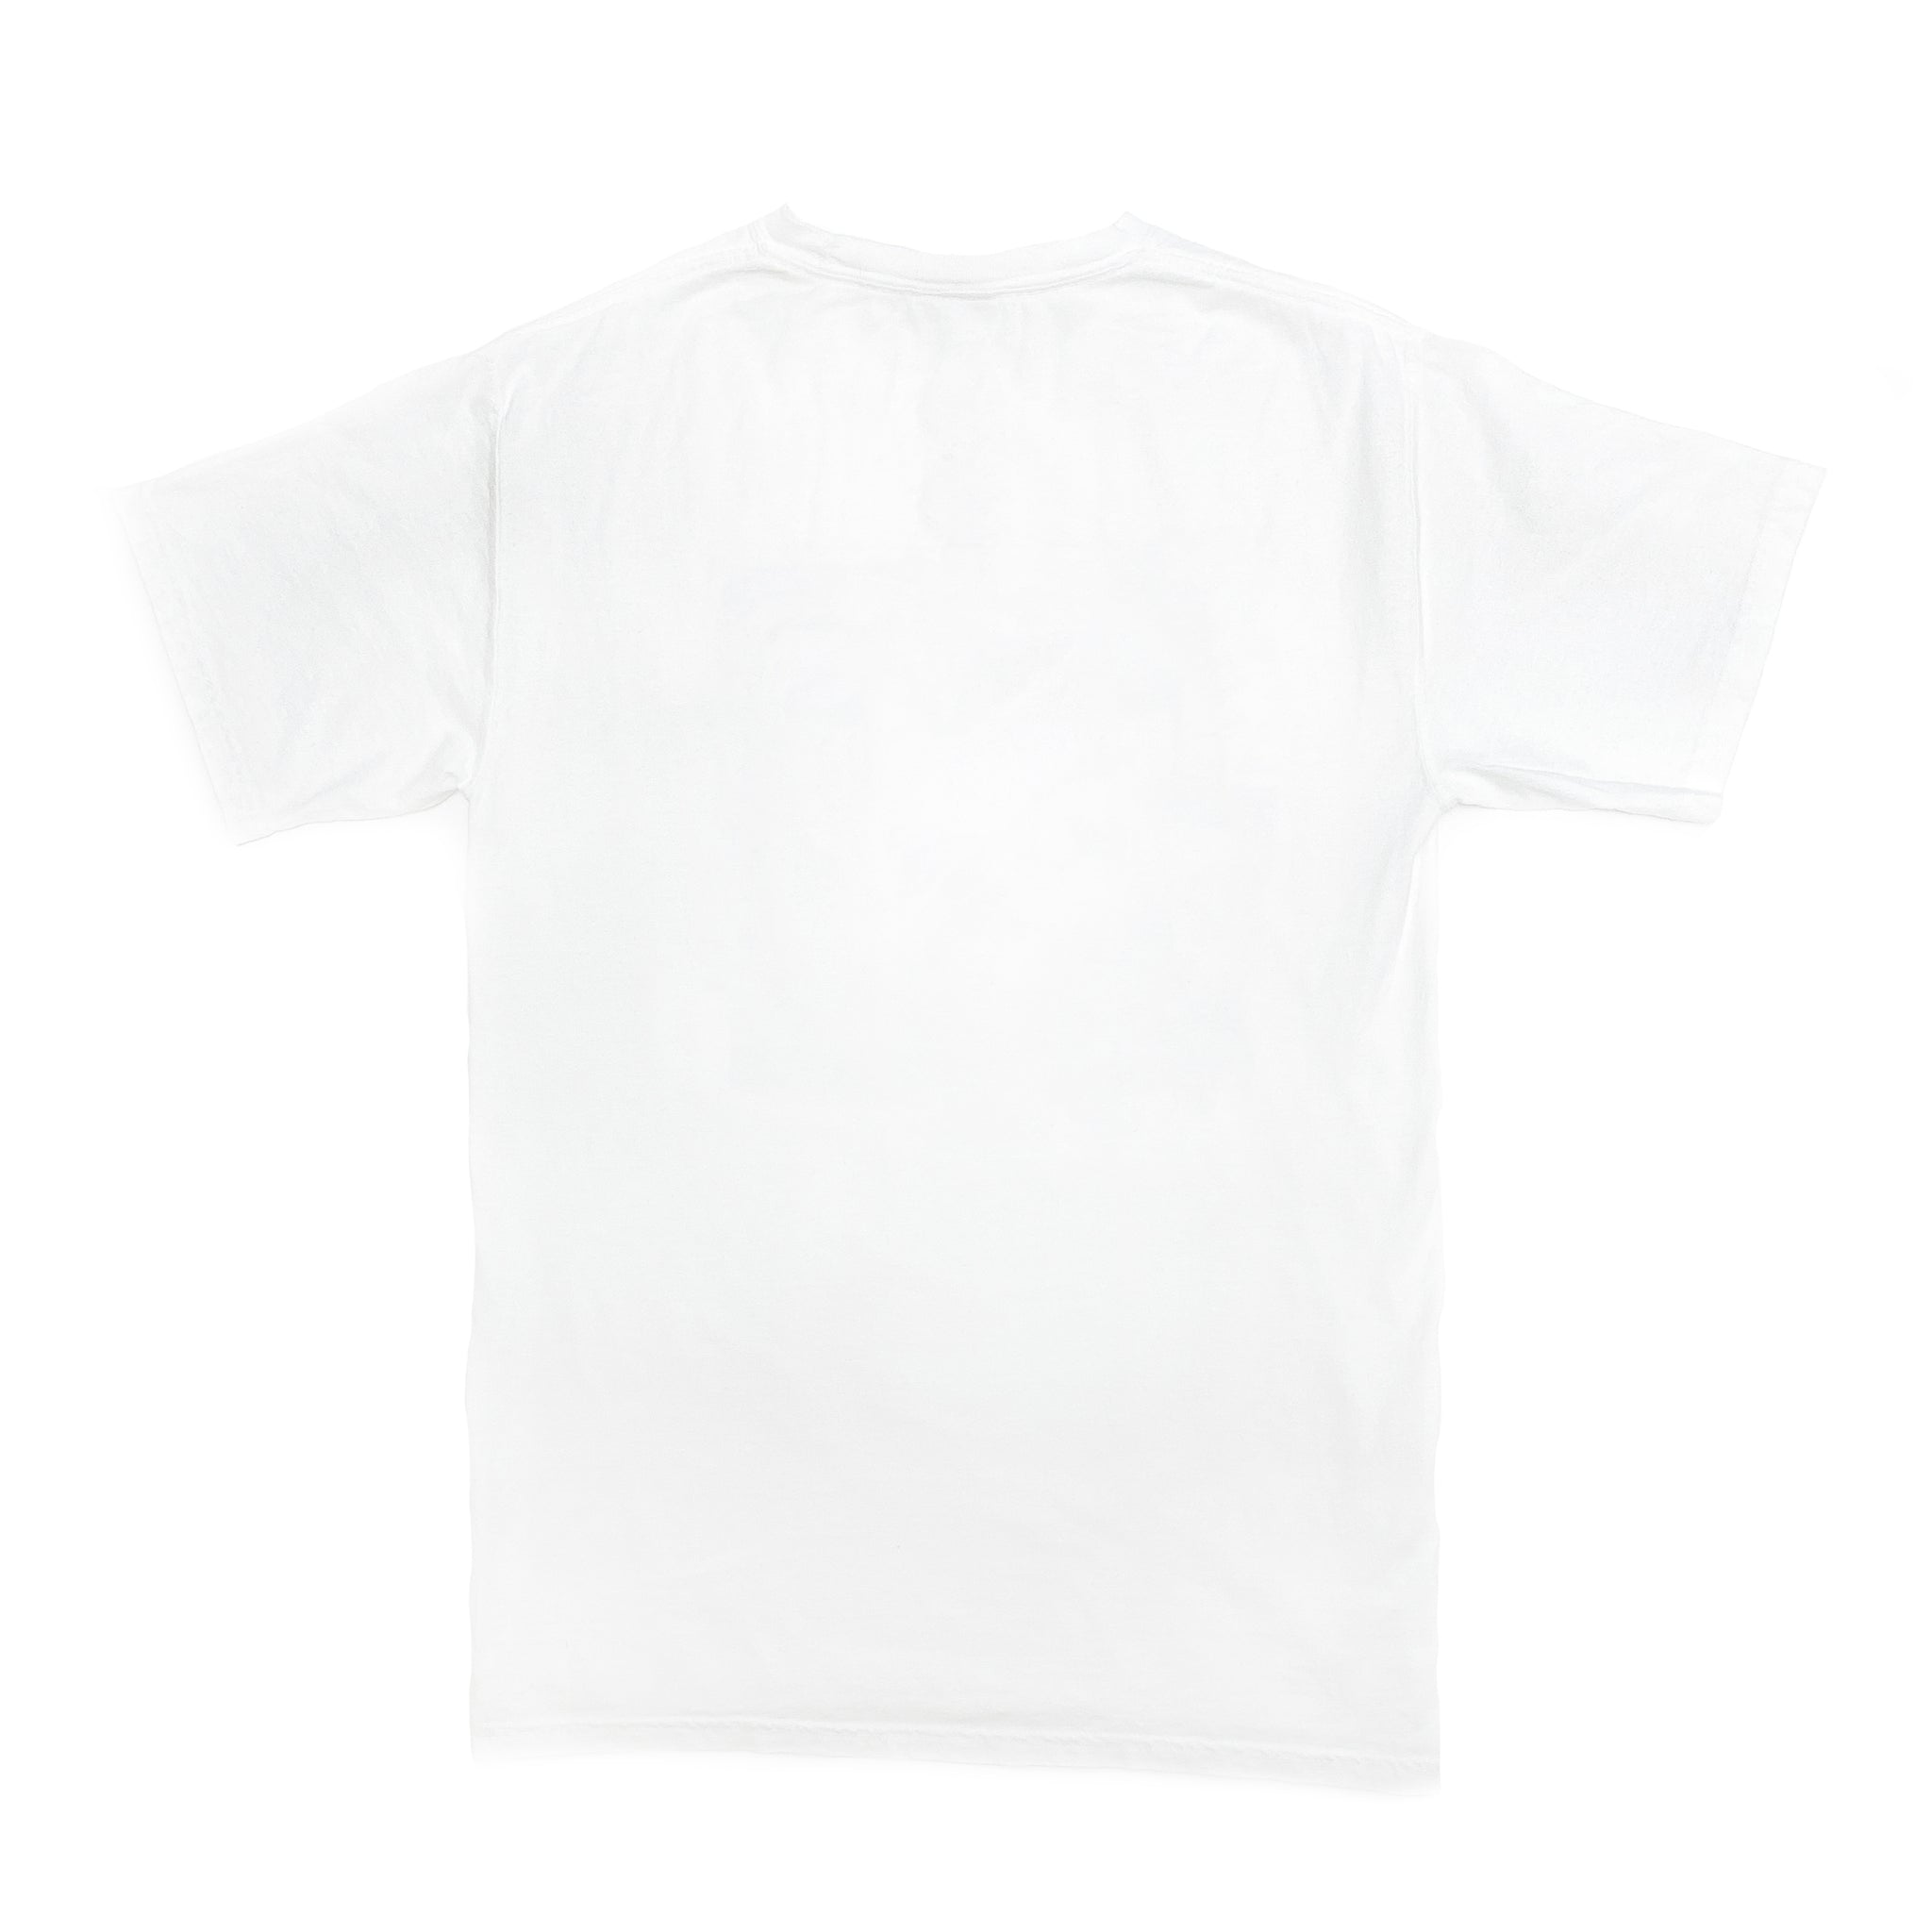 Back of white short-sleeve t-shirt